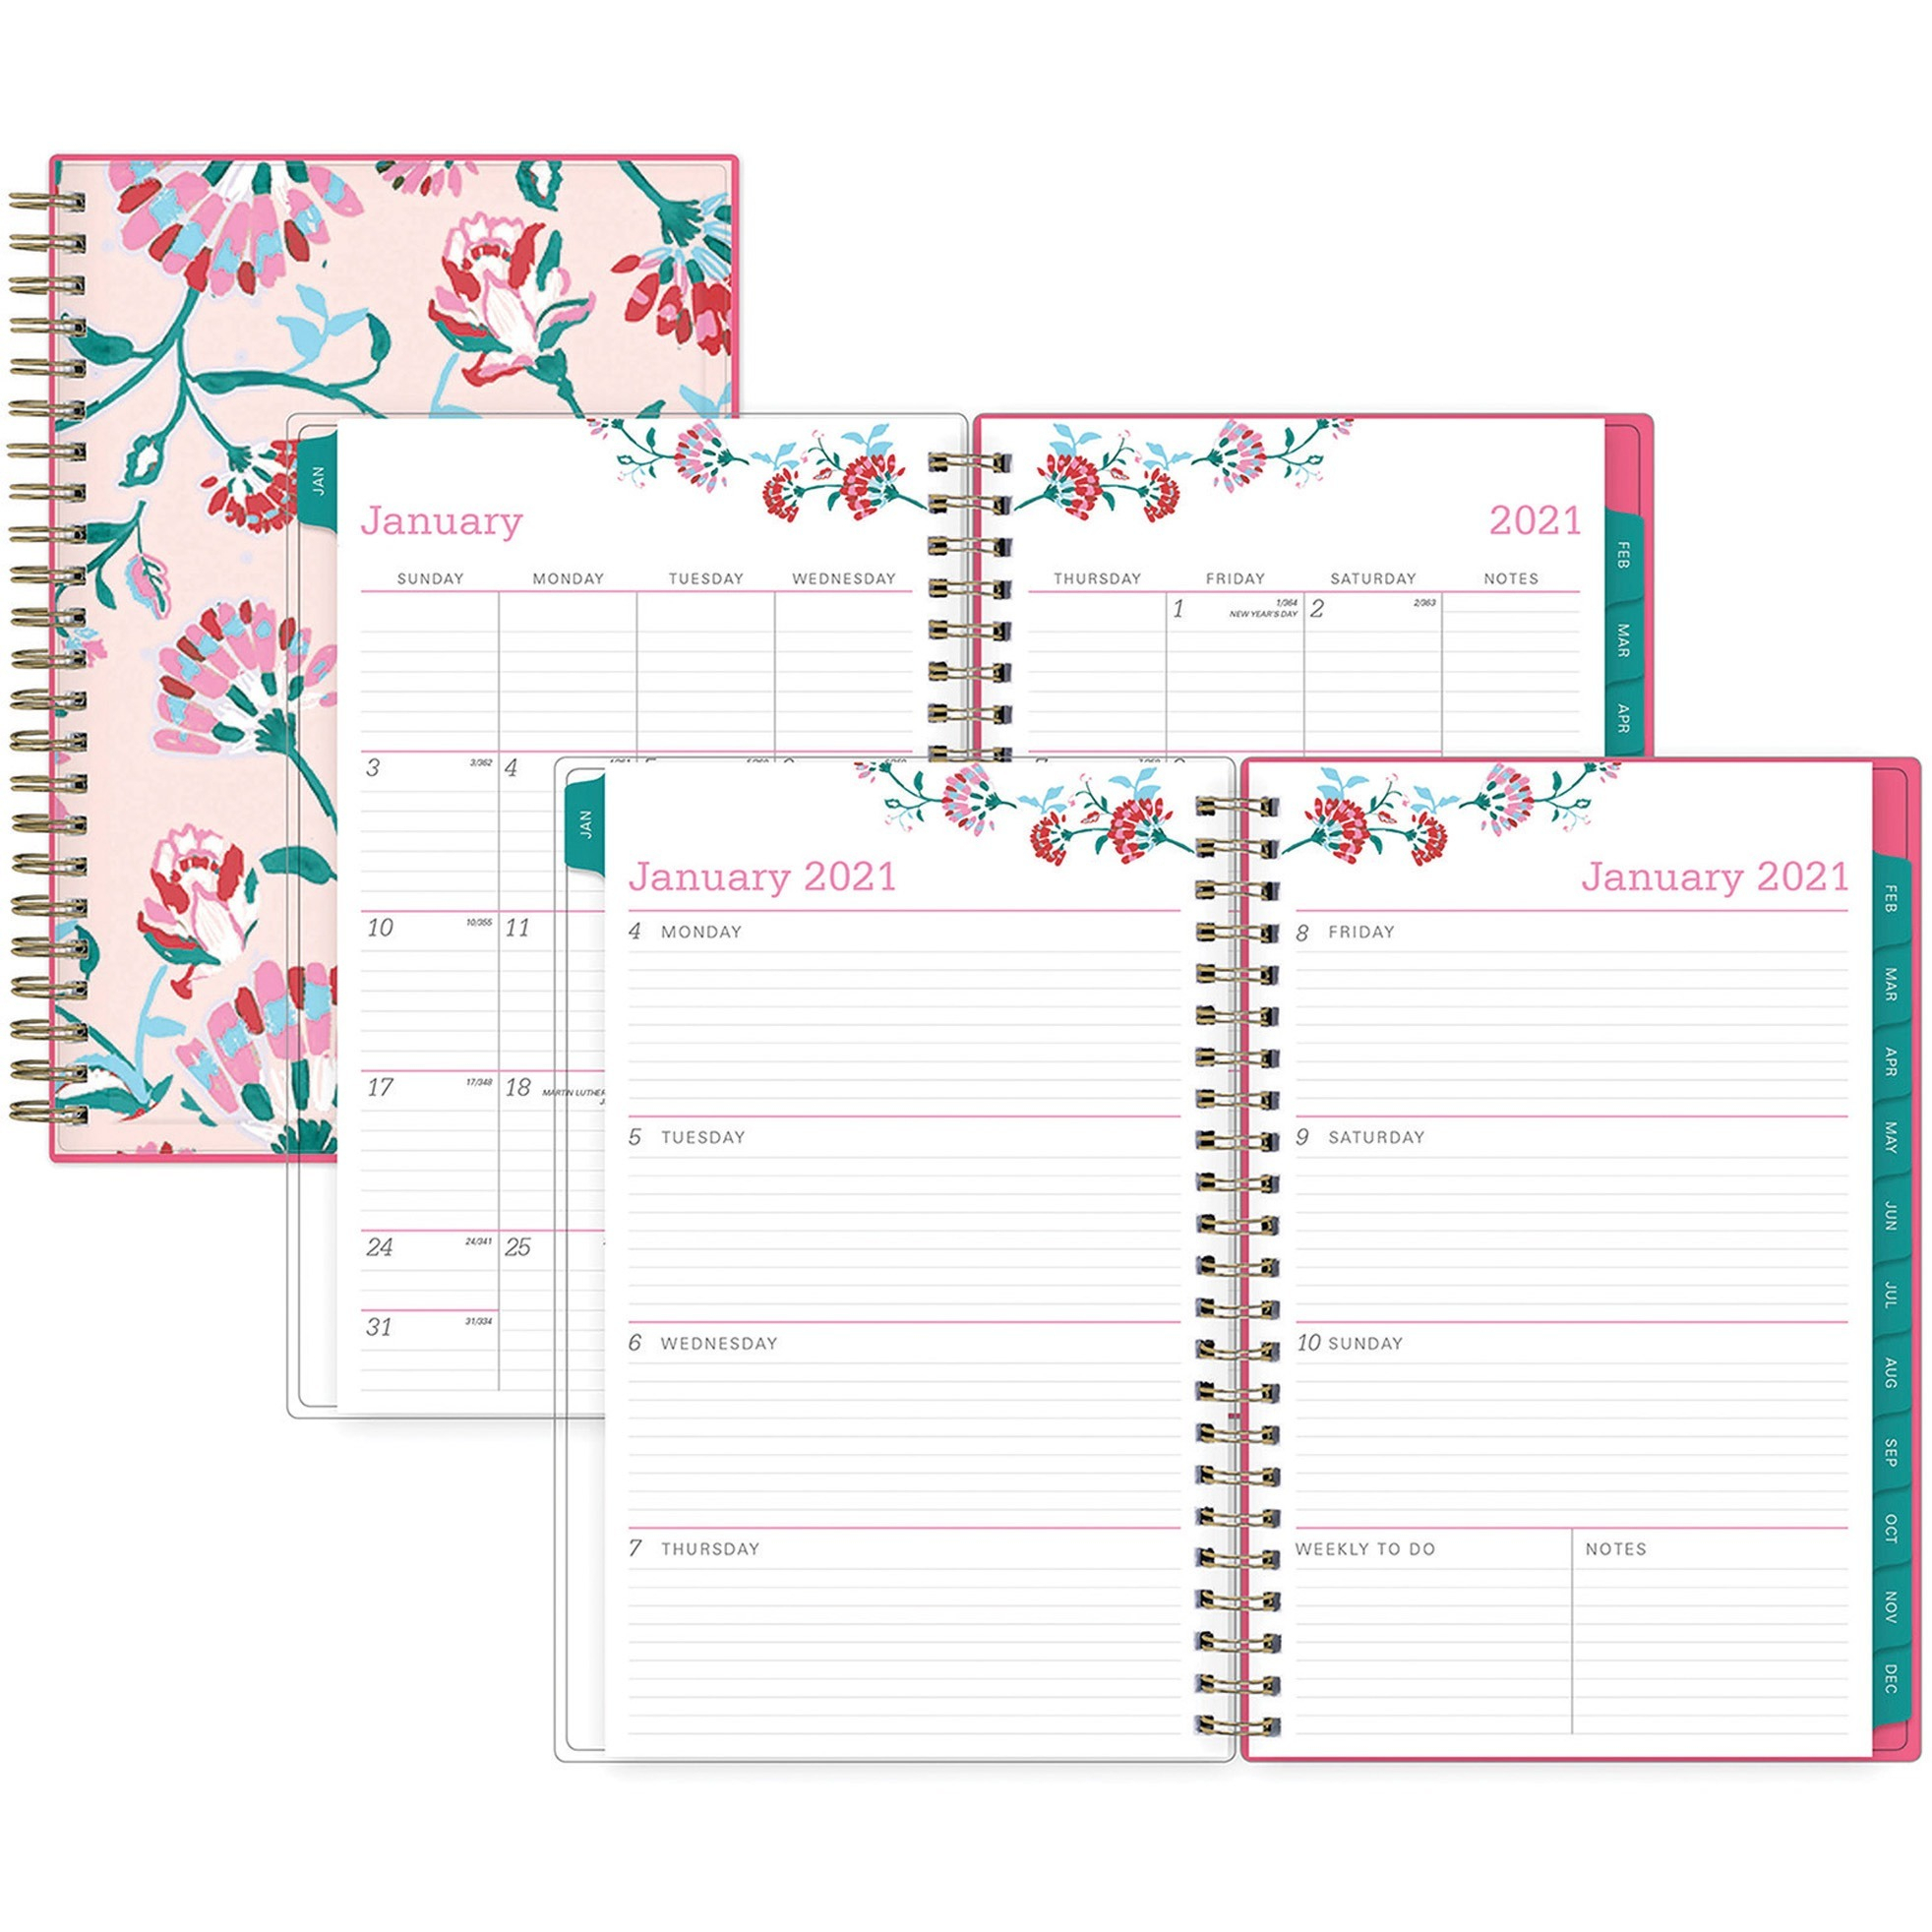 Blue Sky Bca Alexandra Small Weekly/Monthly Planner throughout 2021 Pocket Sized Weekly Planner: